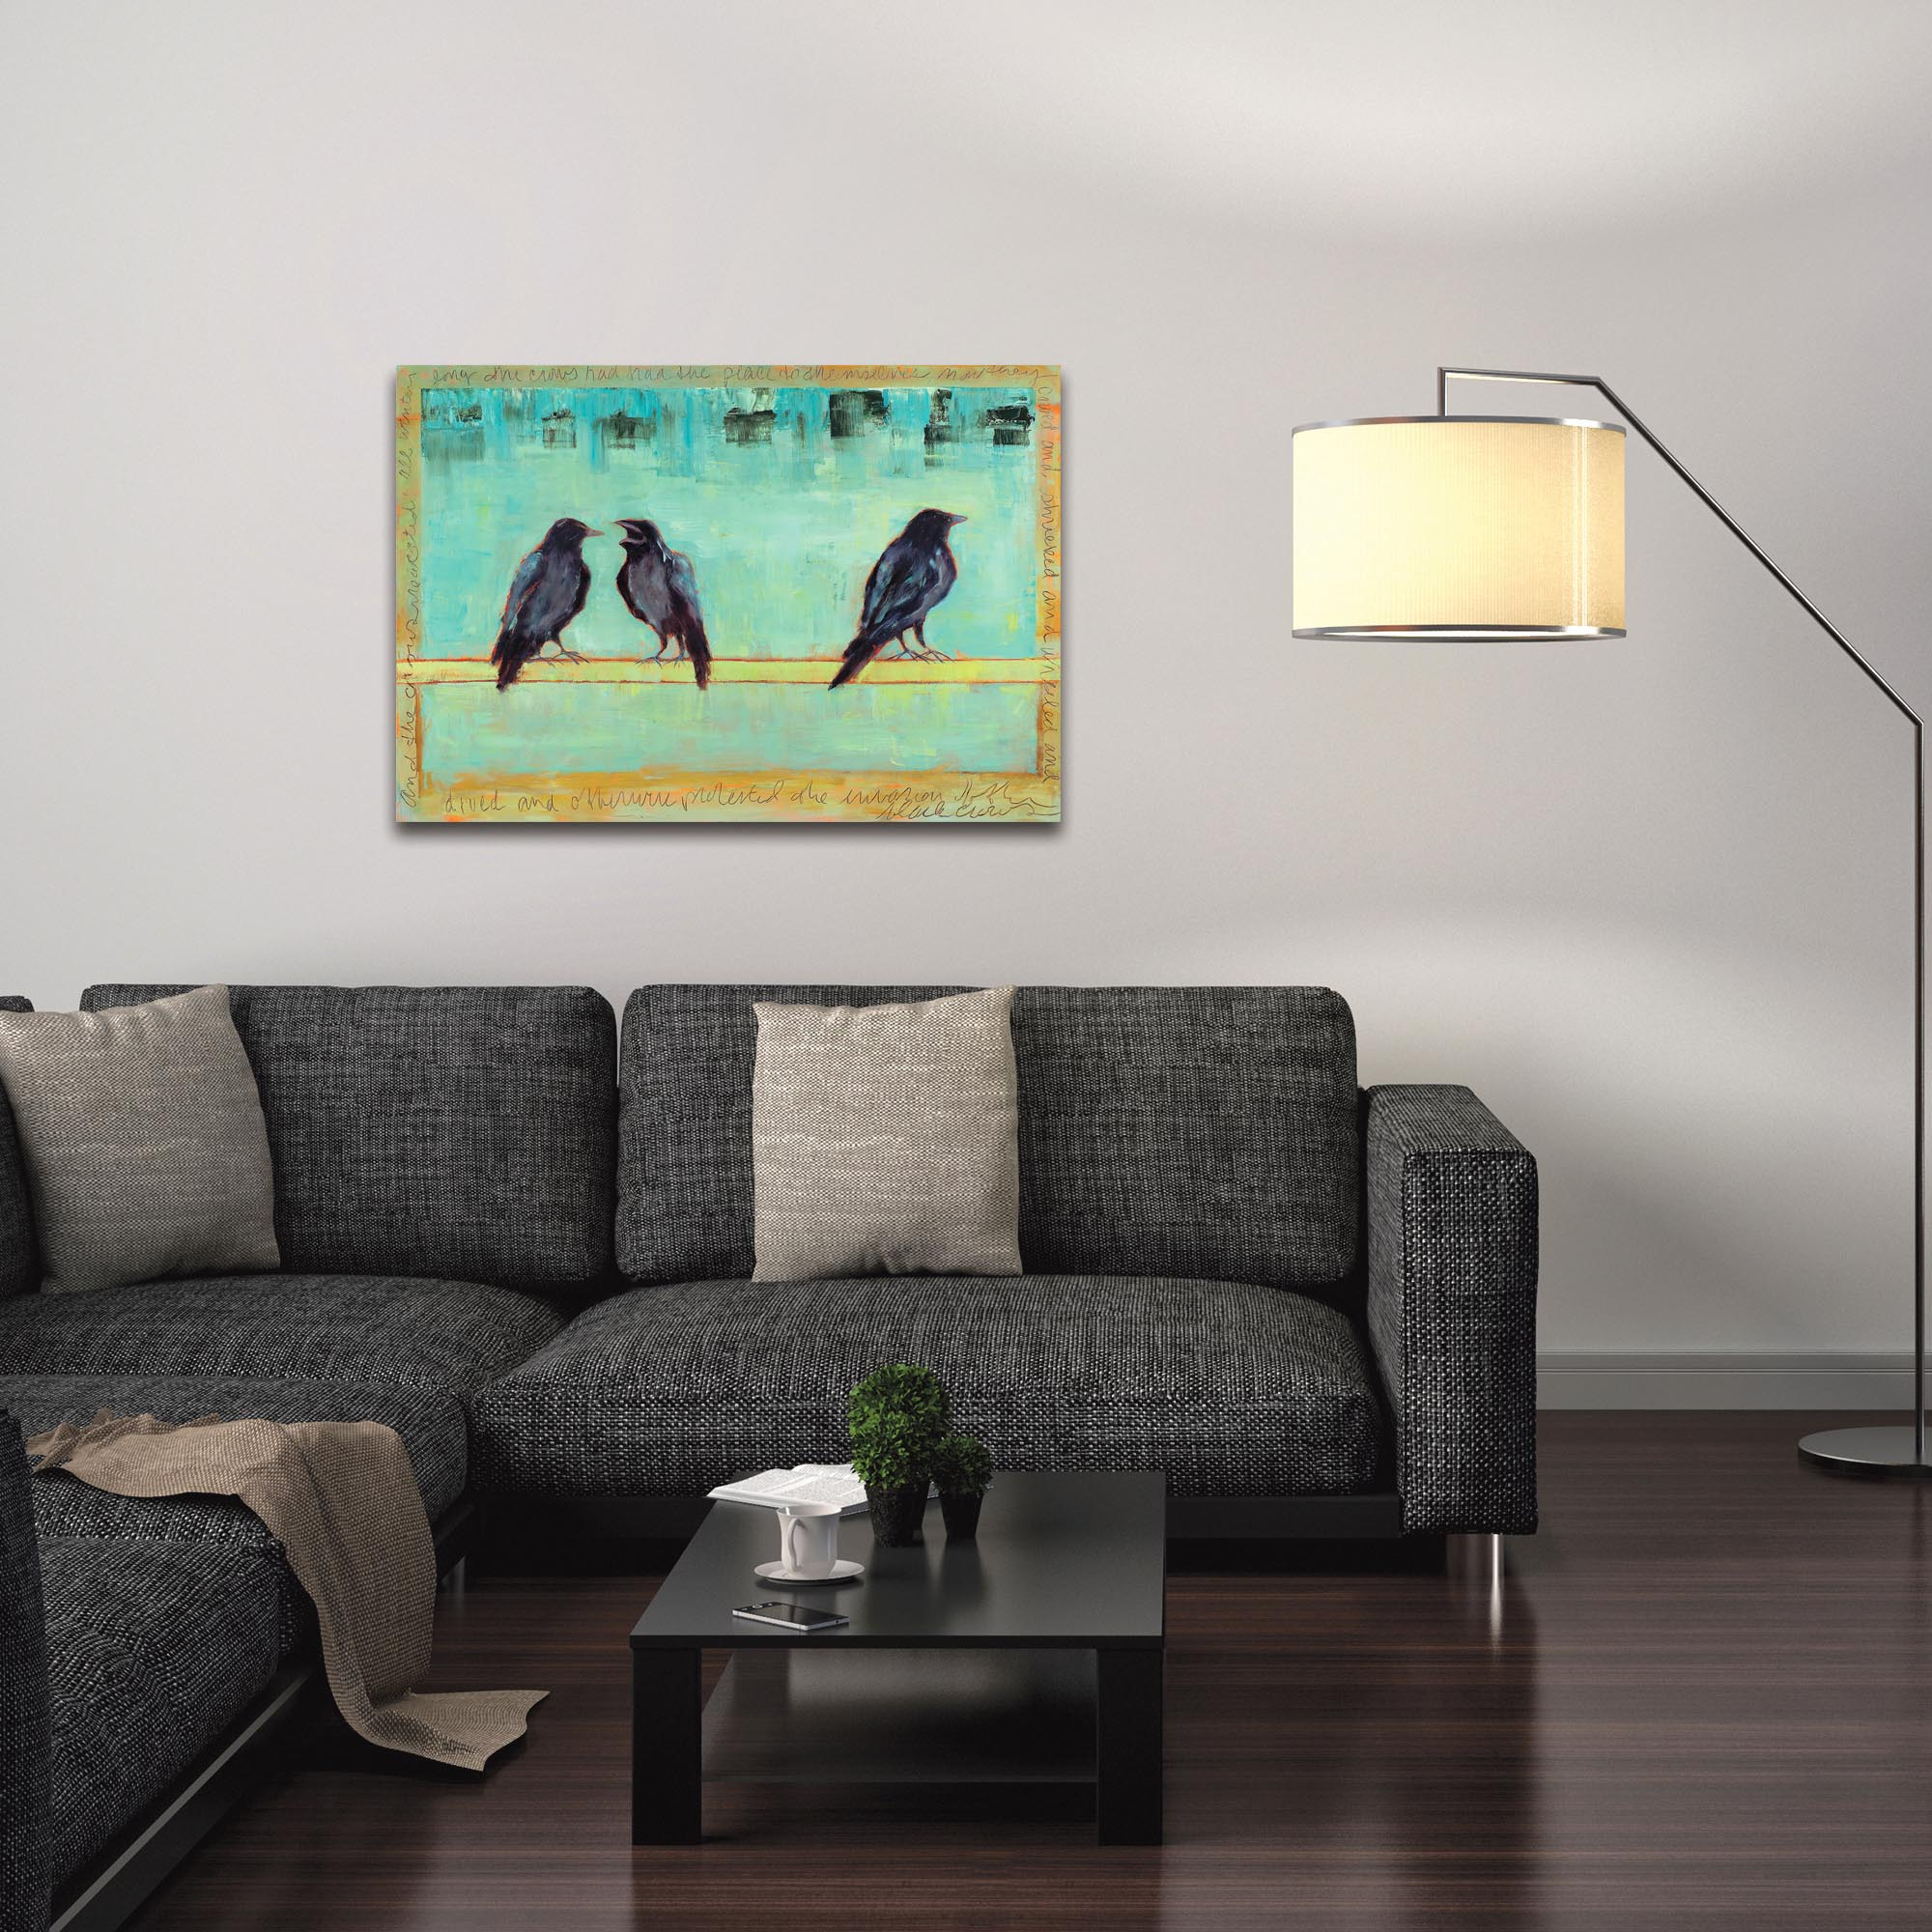 Contemporary Wall Art 'Crow Bar 2' - Urban Birds Decor on Metal or Plexiglass - Lifestyle View